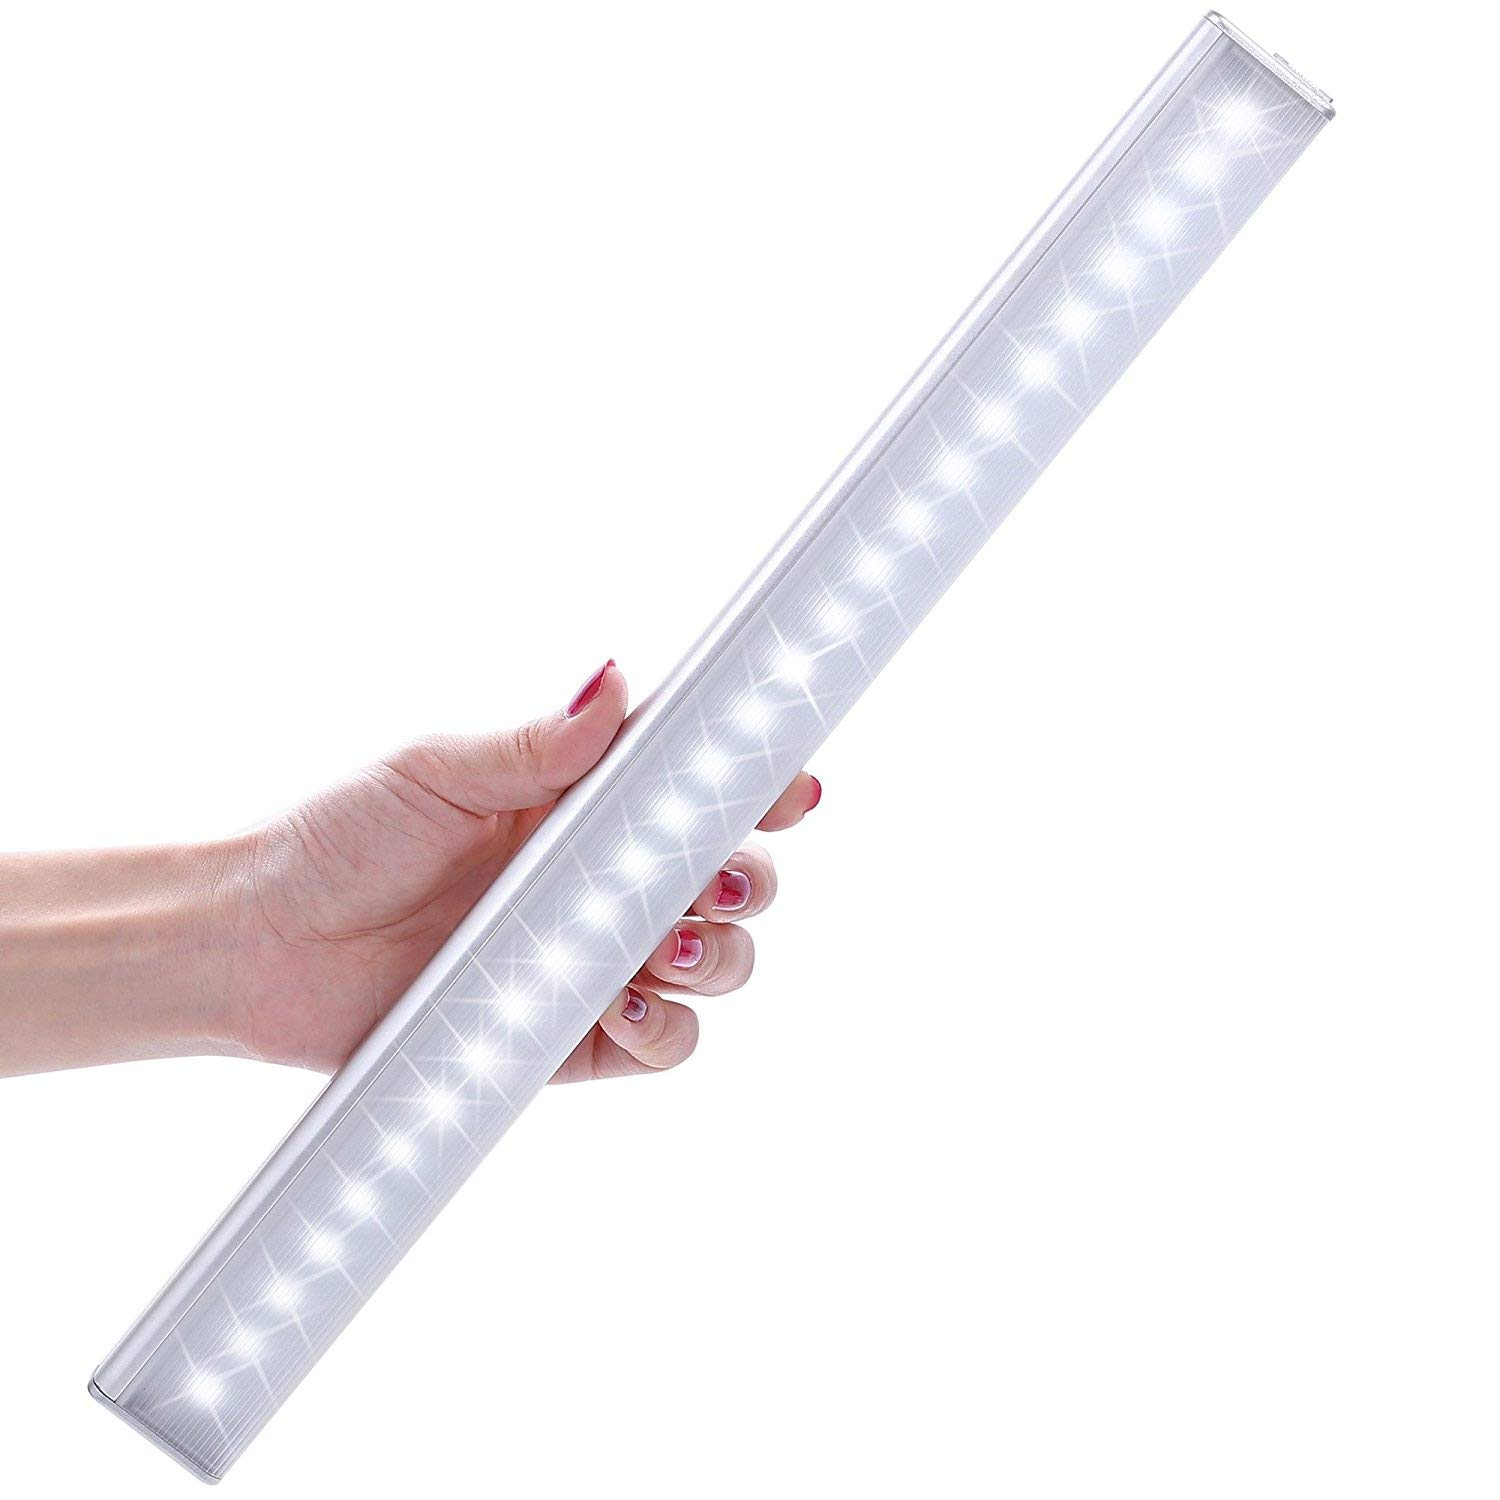 Lofter Motion Sensor Light Rechargeable Stick-on 27 LED Aluminum Motion Activated Night Light for Under Cabinet Closet Cupboard Wardrobe Camping Emergency Lighting with Auto On/Off Switch